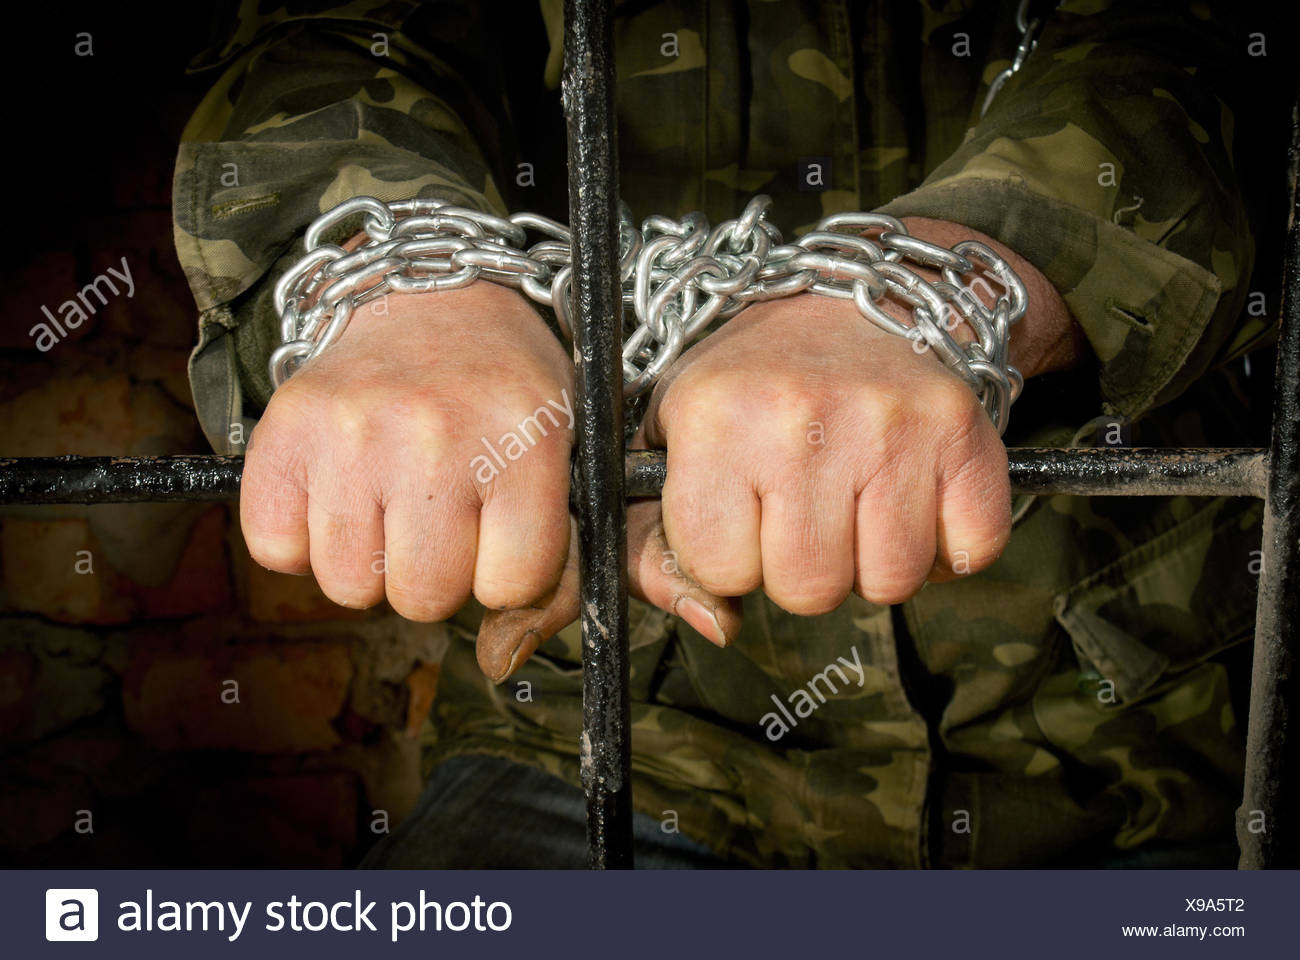 Man with hands tied up with chain - Stock Image